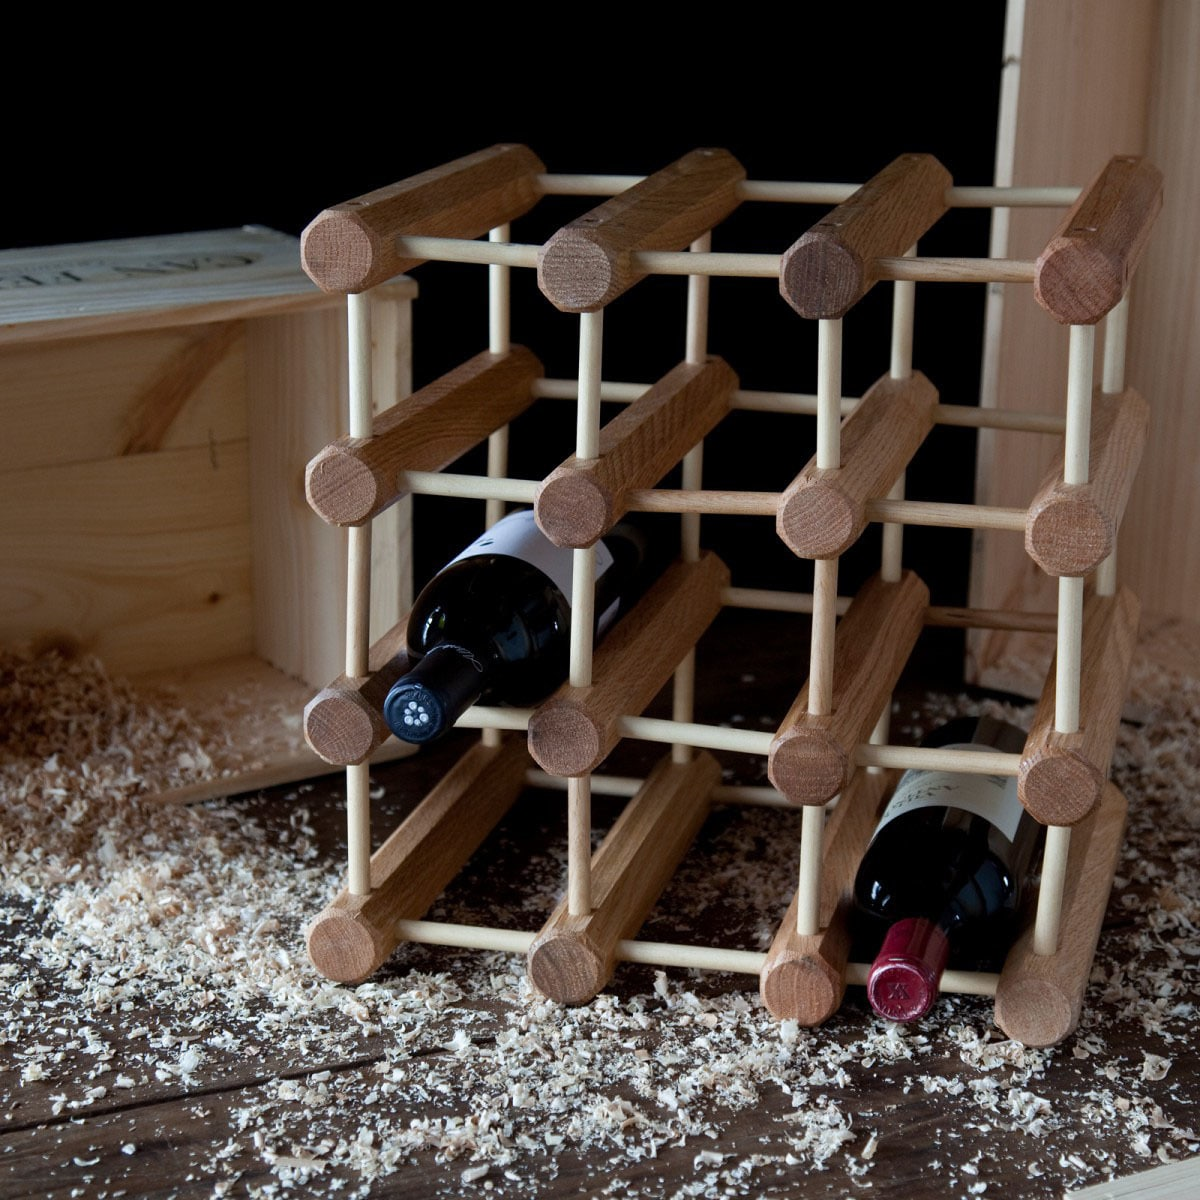 pleasant on details guests homes lovely cellar rack wooden make wine floor looked traba close racks storage metal blank to wall